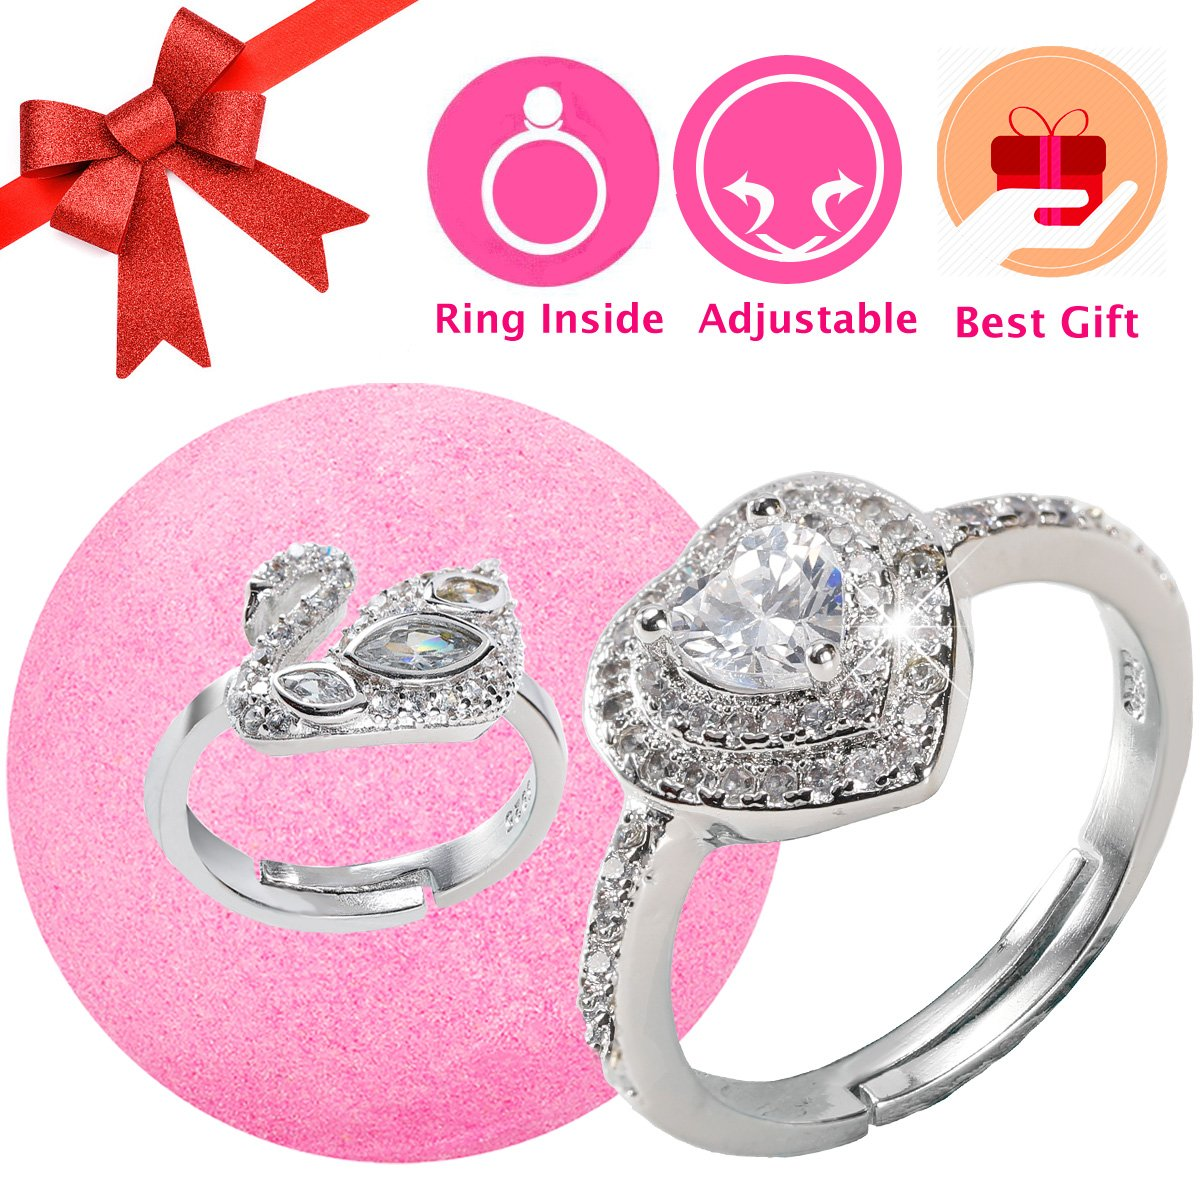 Amazon.com: Bath Bomb with Surprise Ring Prizes Inside for Women ...